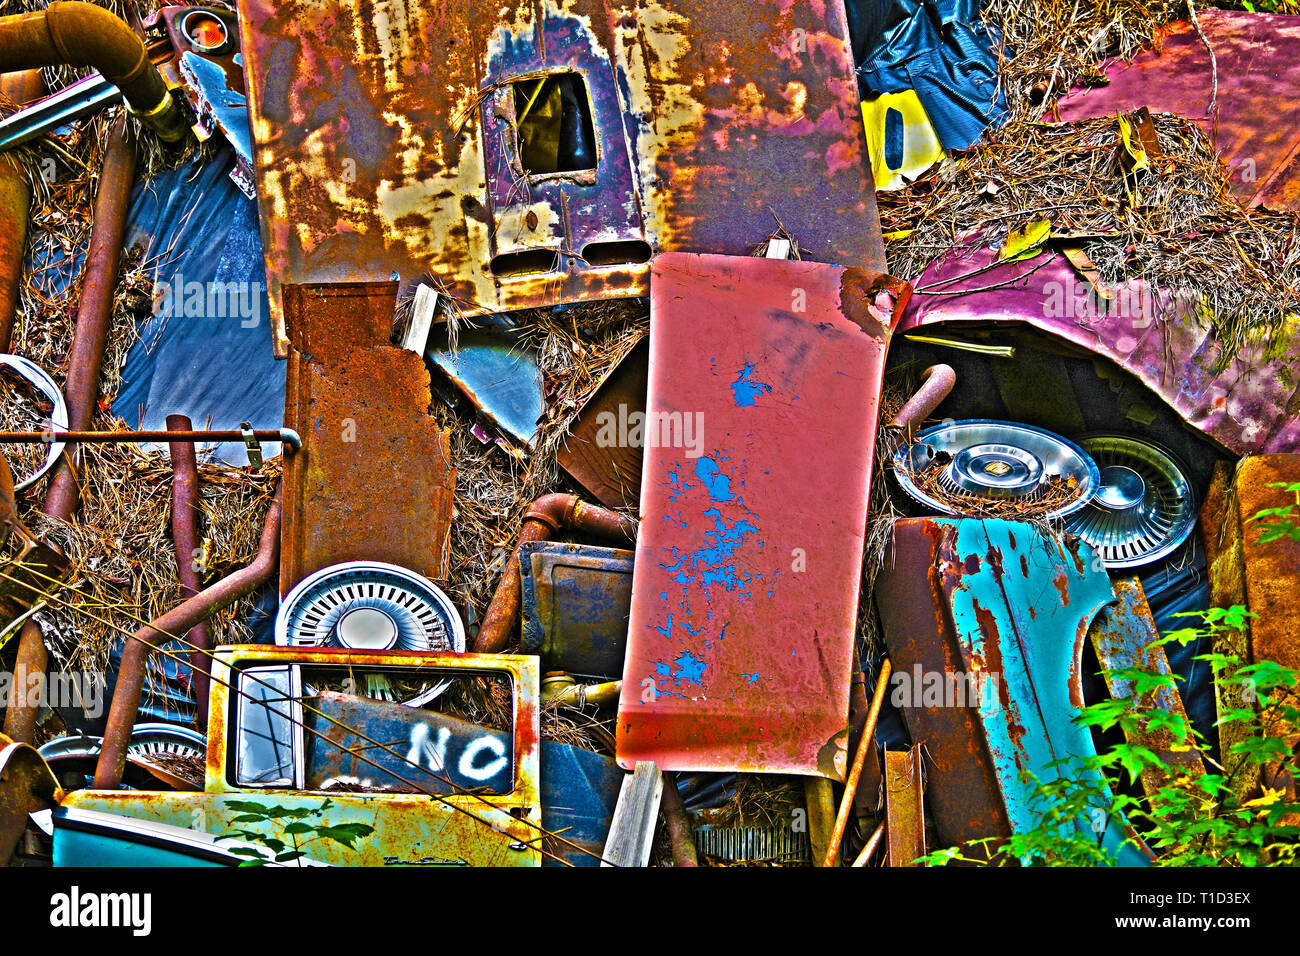 A Pile of Scrap Metal with Various Car Parts and Other Items at a Junk Yard - Stock Image